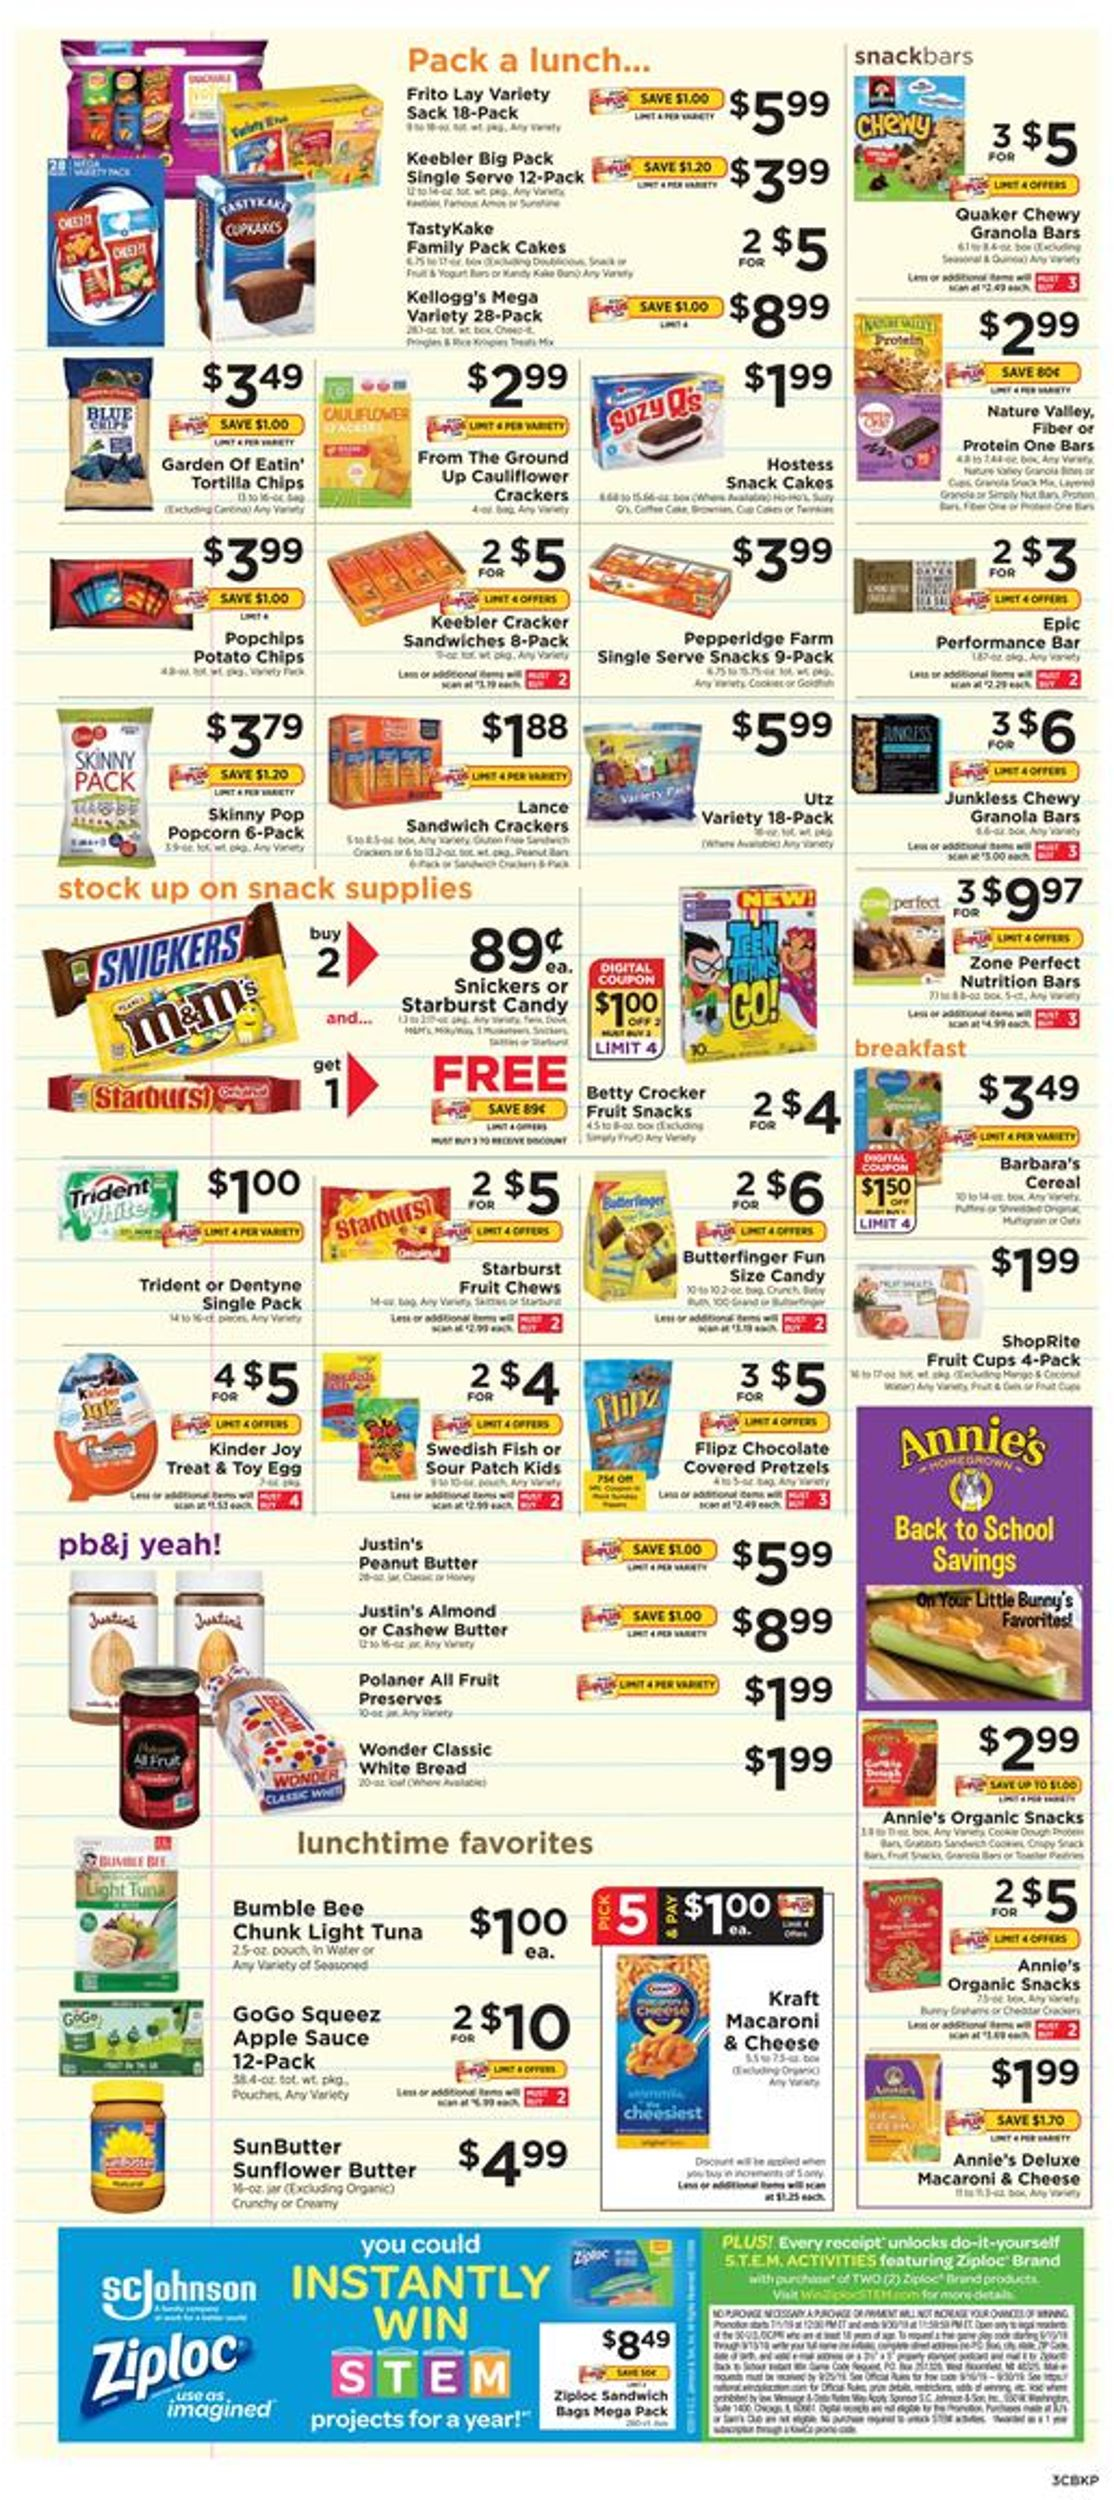 ShopRite Current weekly ad 08/18 - 08/24/2019 [3] - weekly-ad-24.com